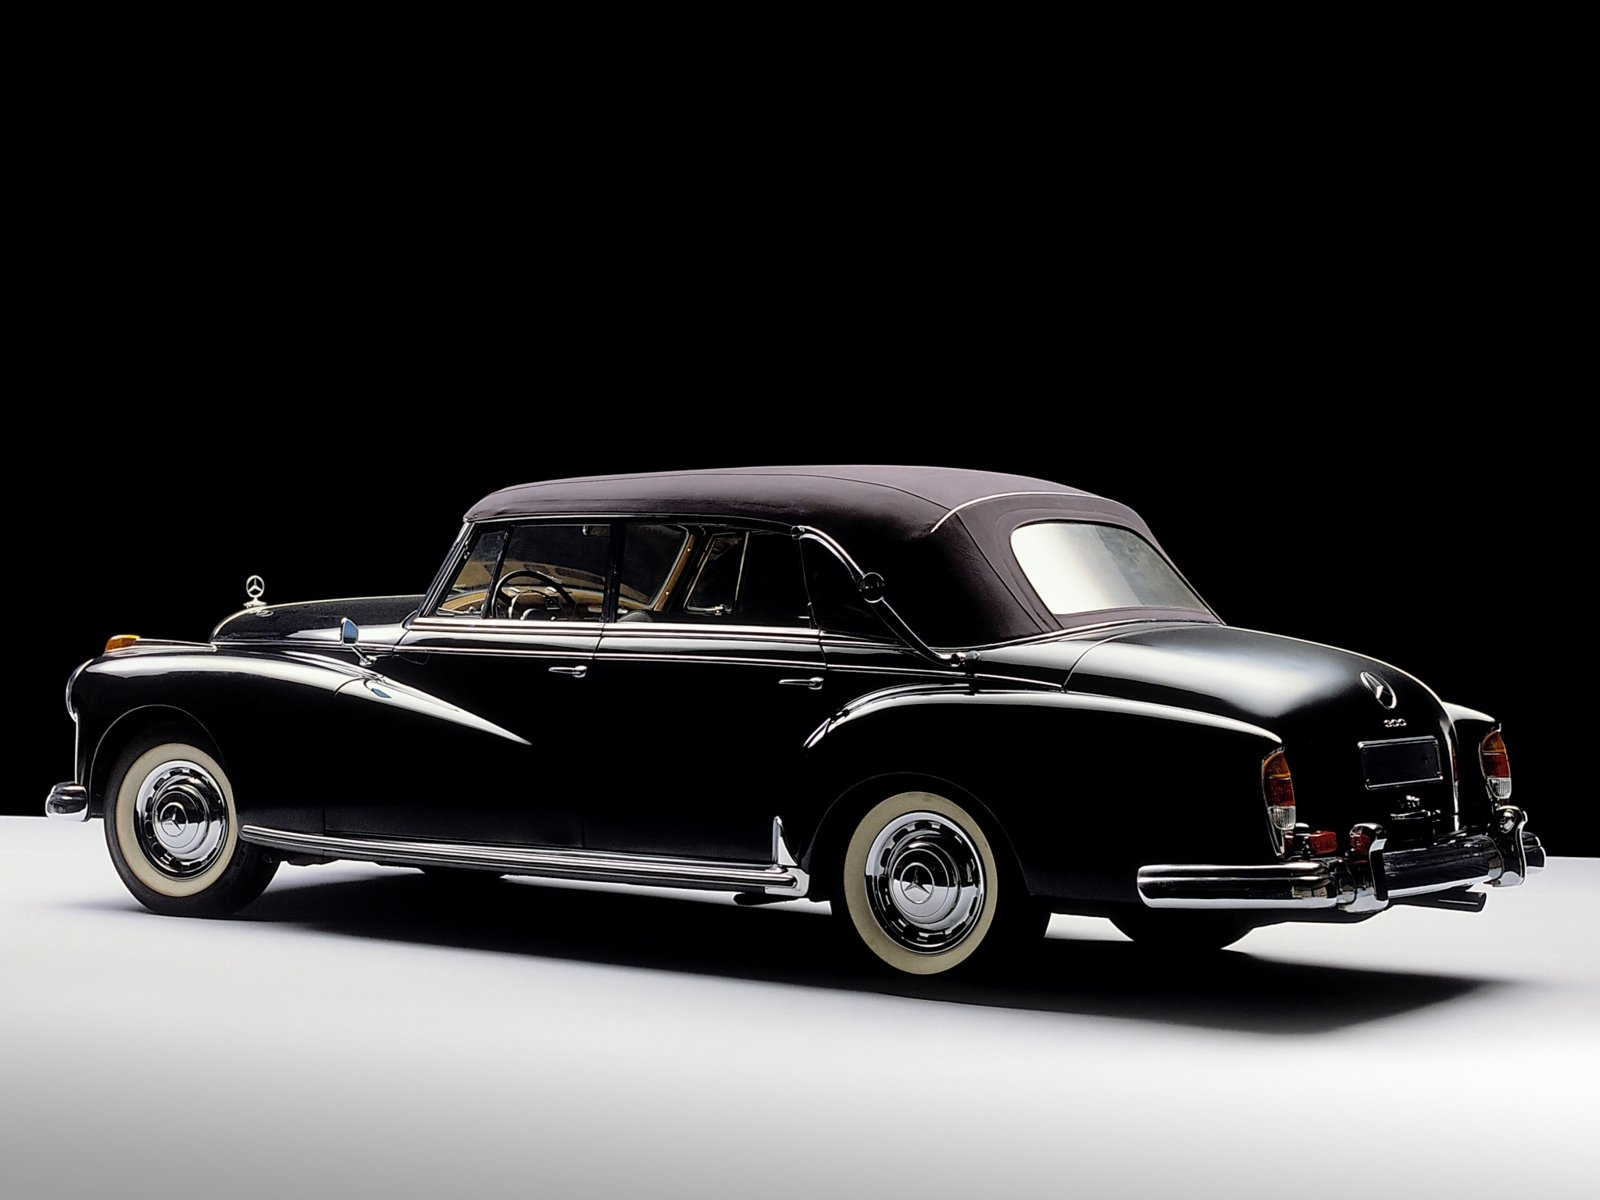 Mercedes benz 300 adenauer w189 specifications for Mercedes benz 300